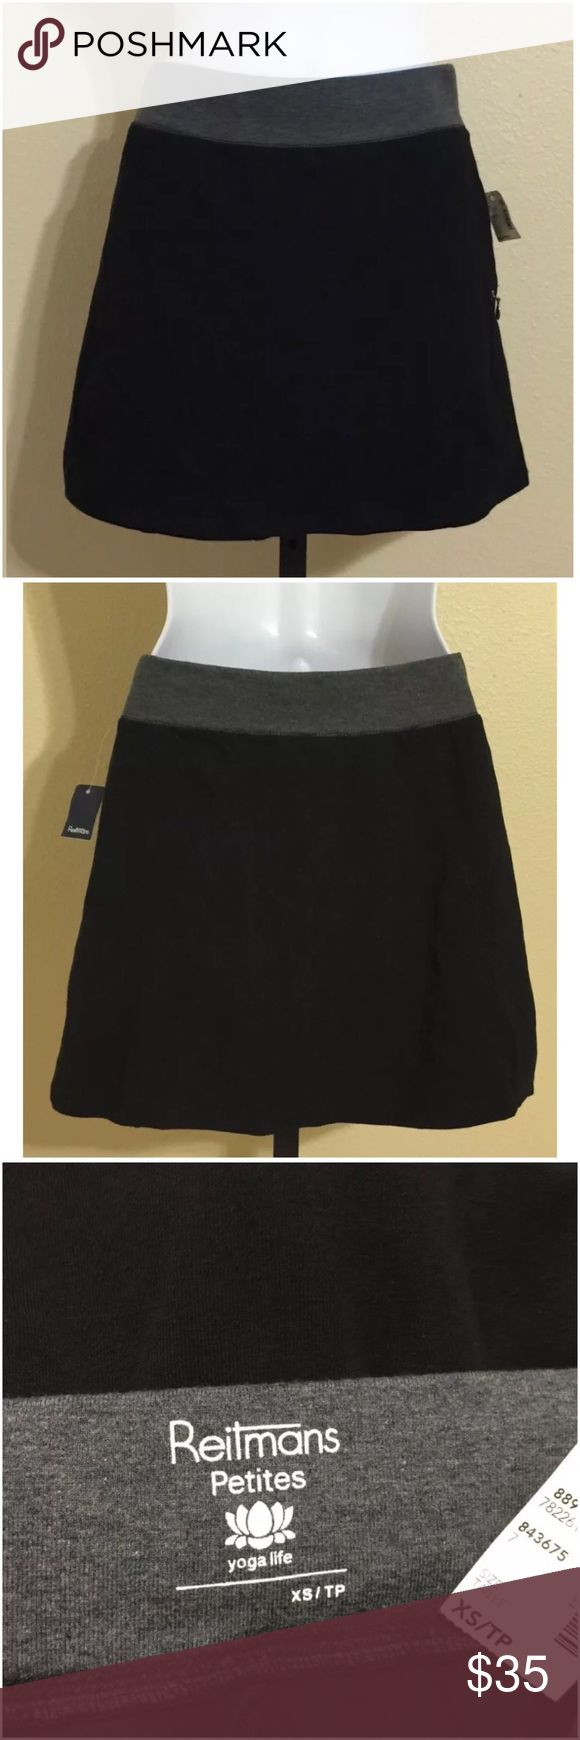 Reitmans Petite Yoga Skorts Size XS Reitmans Petites Women's Athletic Skort Size XS Black Color Gray Elastic Waistband 1 Front Zip Closure Pocket Left Side Machine Washable 90% Cotton 10% Spandex Short Inseam Approx. 3 Inches Short Rise Approx. 8.5 Inches Waist With Fully Relaxed Elastic Waistband Approx. 24 Inches Waist Will Comfortably Stretch to Approx. 26-28 Inches Hips Approx. 31 Inches Front Skirt Length Approx. 14 Inches Rear Skirt Length Approx. 14.5 Inches Sweep Approx. 38 Inches…